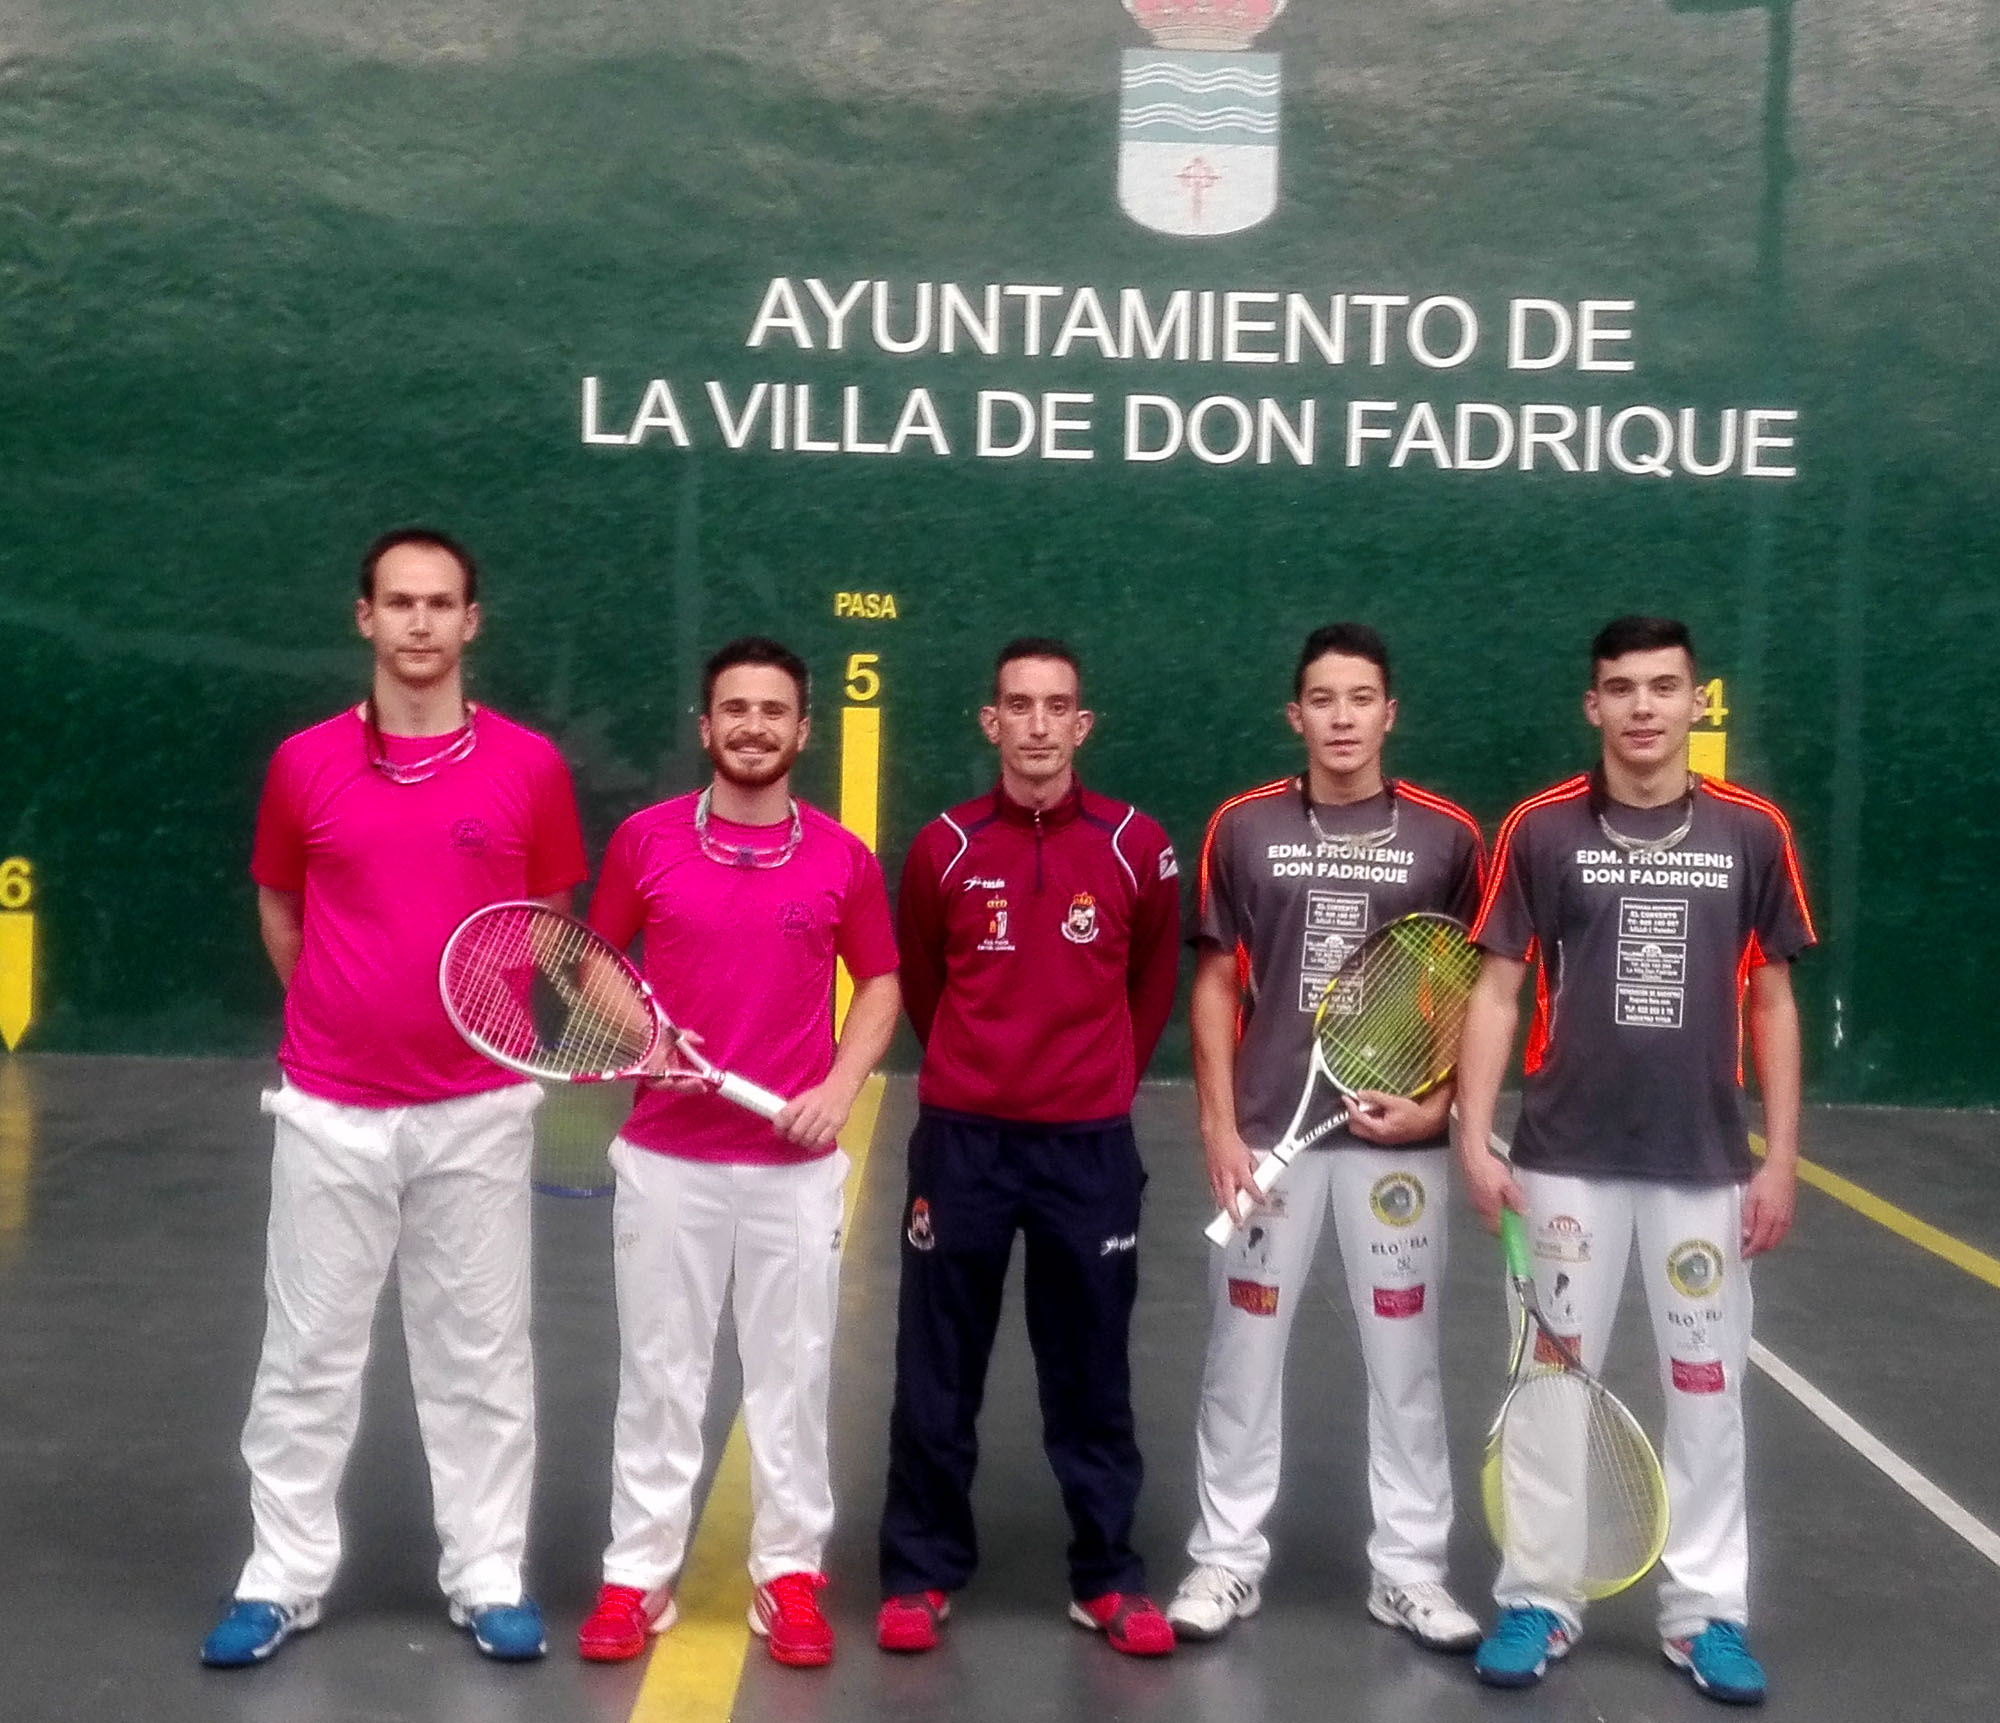 Los componentes del Don Fadrique B disputarán la fase final de El Molar en Madrid